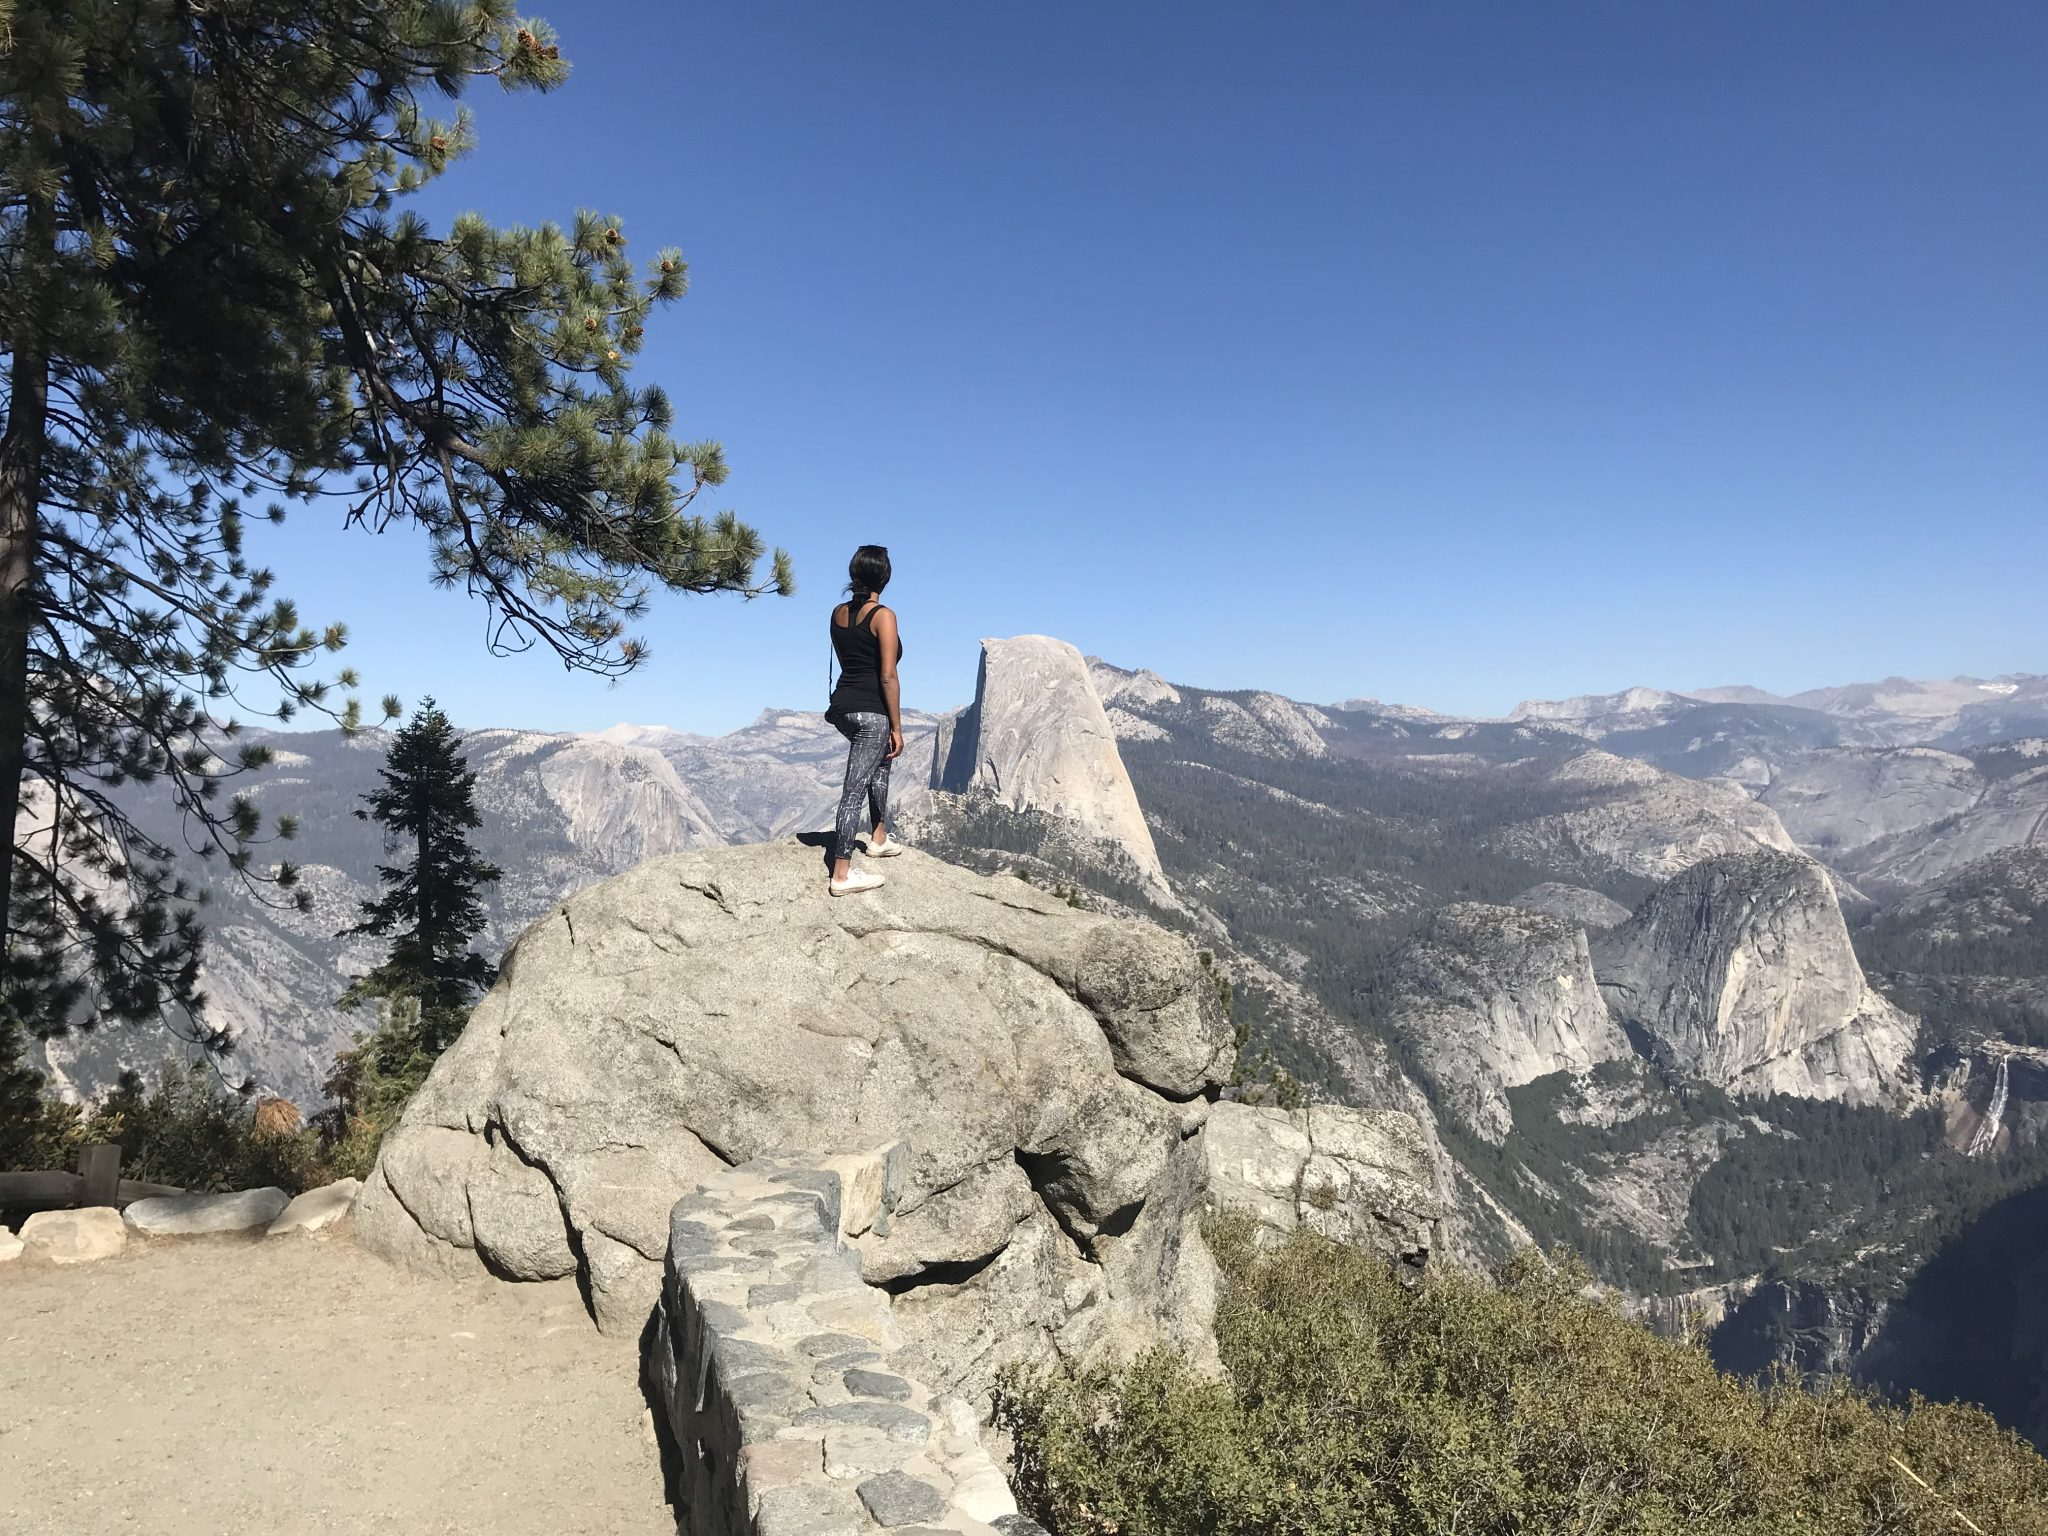 me watching the Halfdome